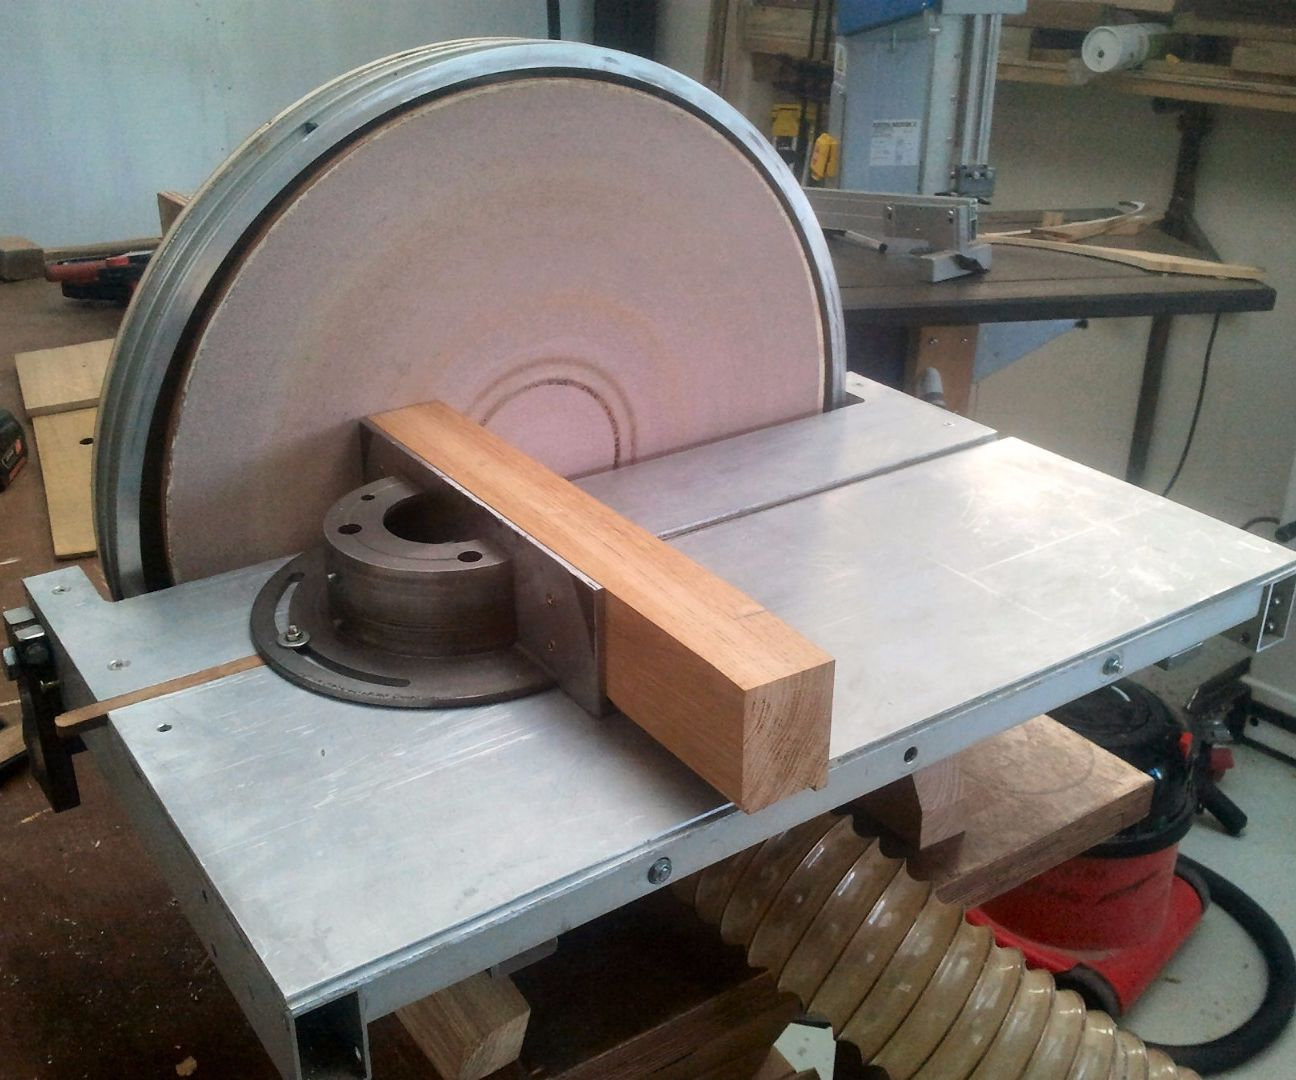 BIG Disk Sander: Build, Use and Tips